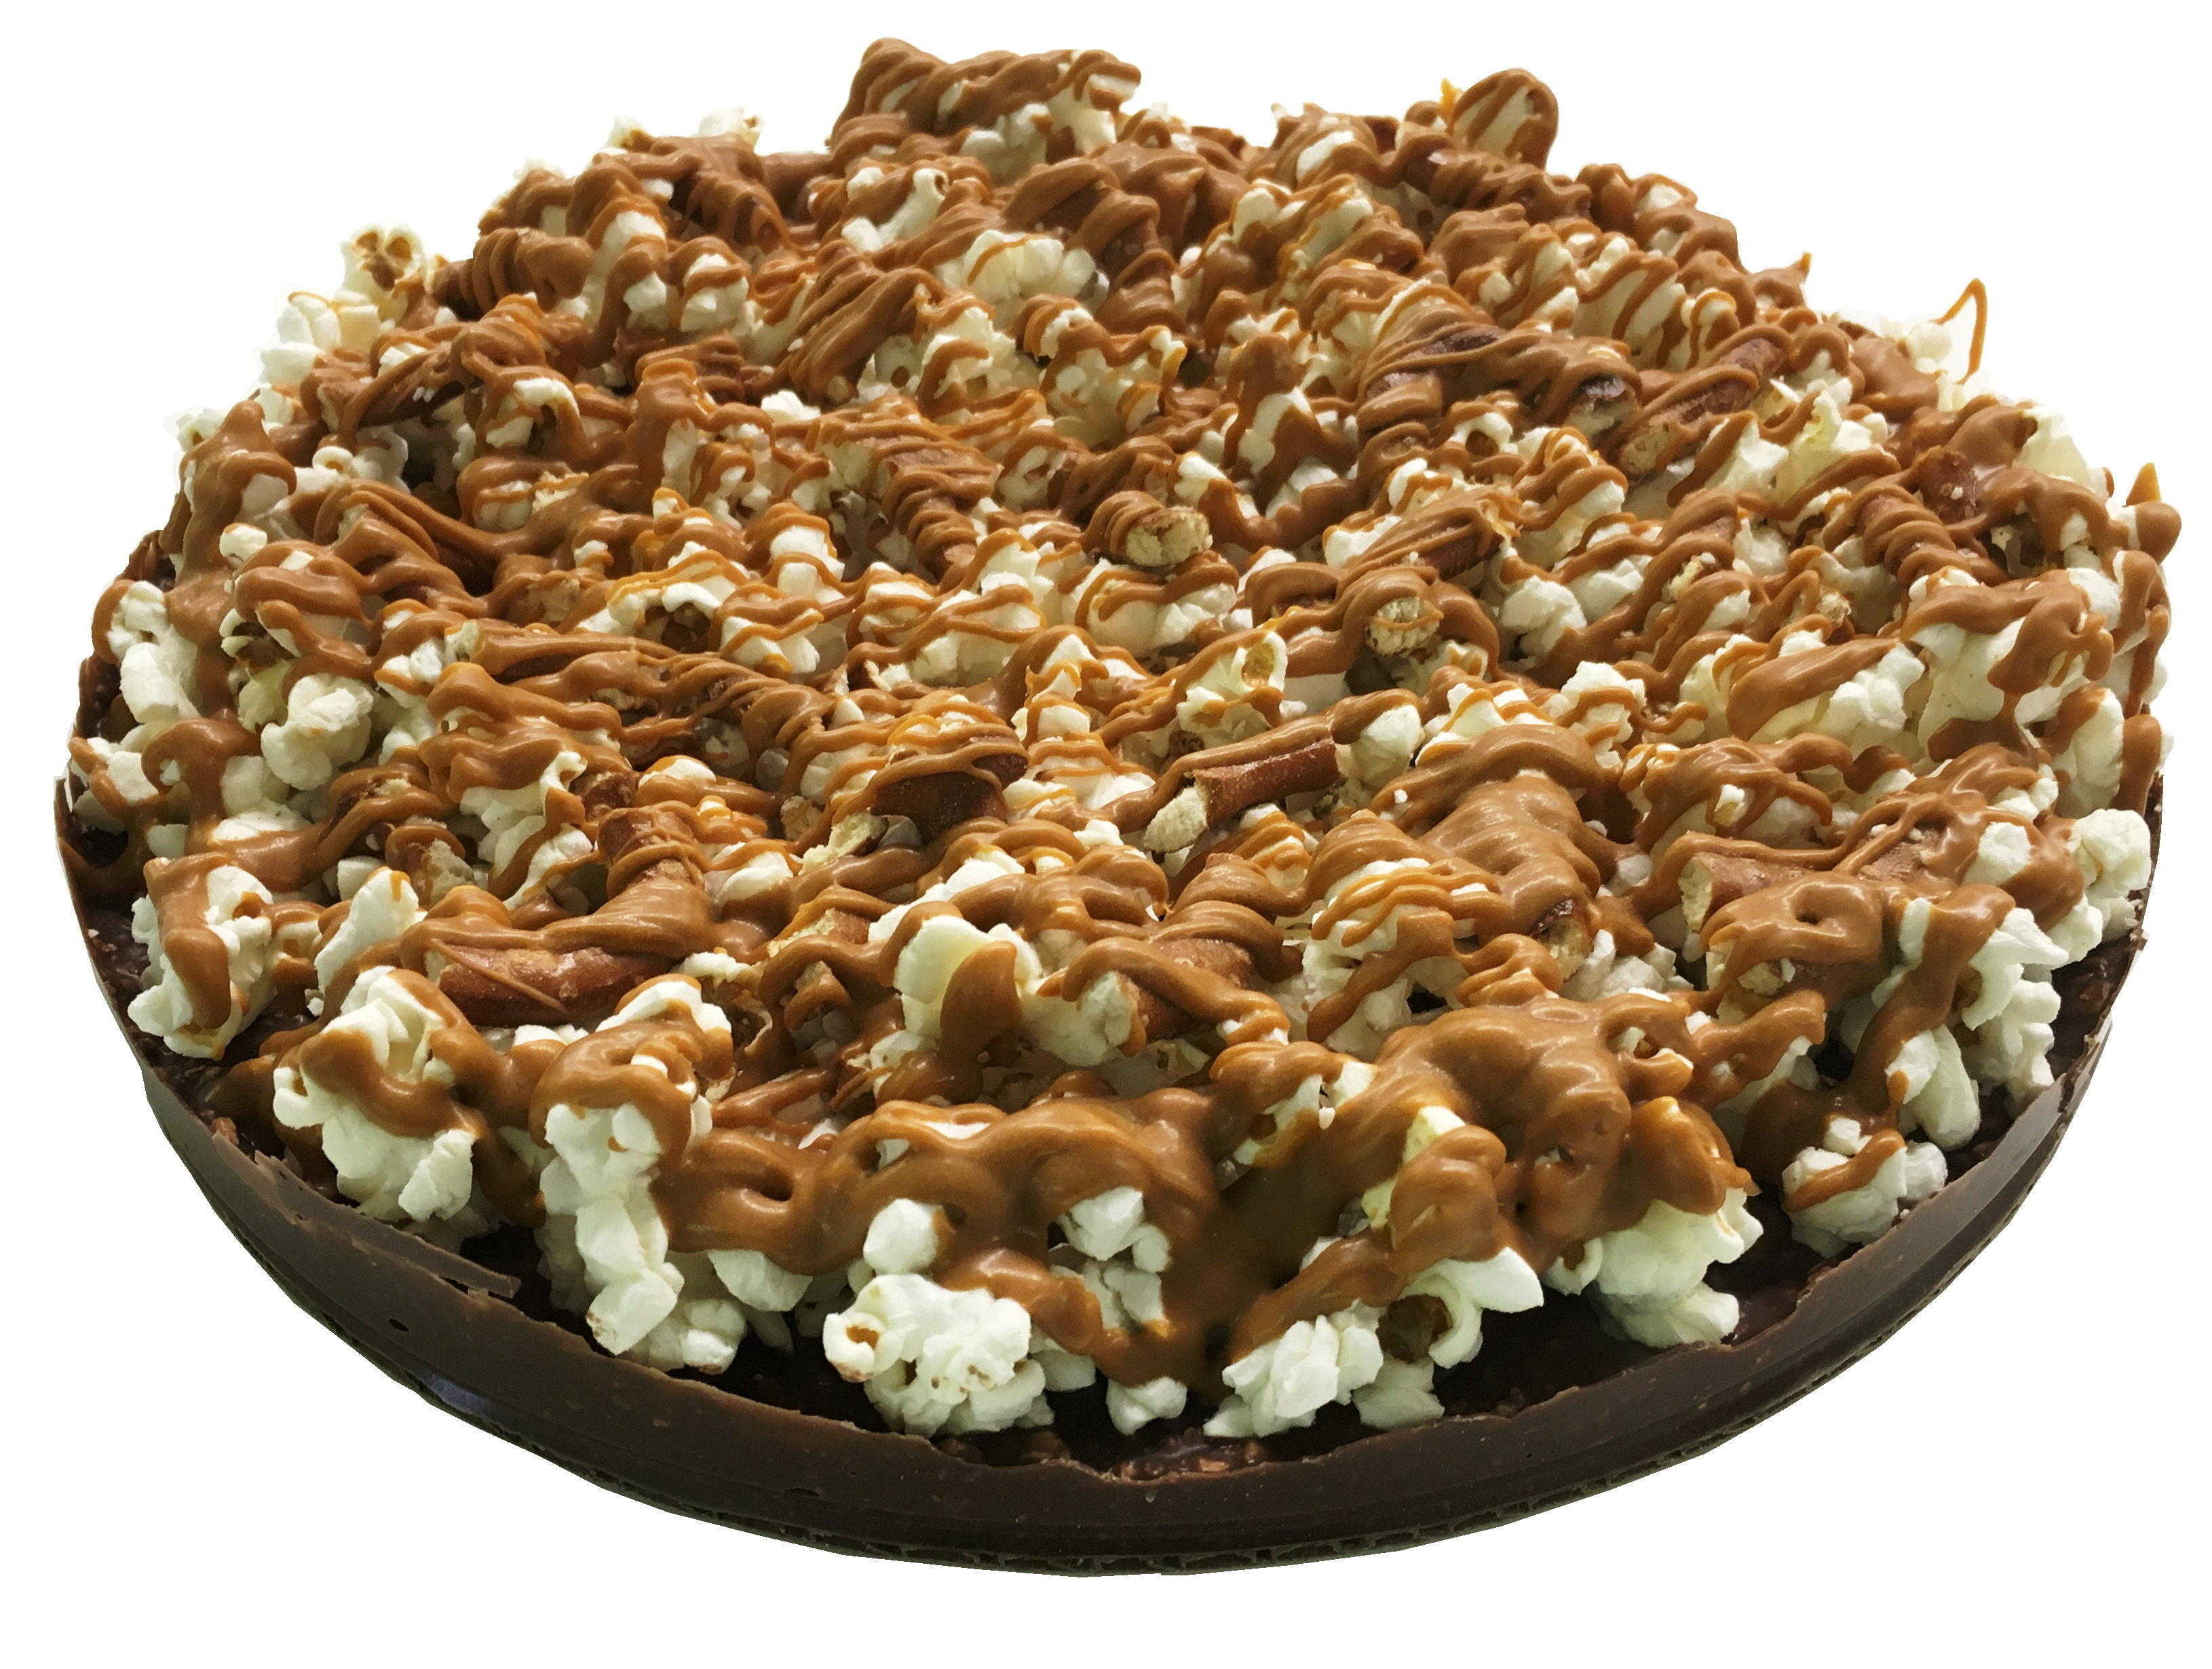 Gourmet Chocolate Pizza - Pizazz™ - Mini - Gluten Free - Supreme - Sea Salt Caramel - Wholesale W-MIGFSUCA